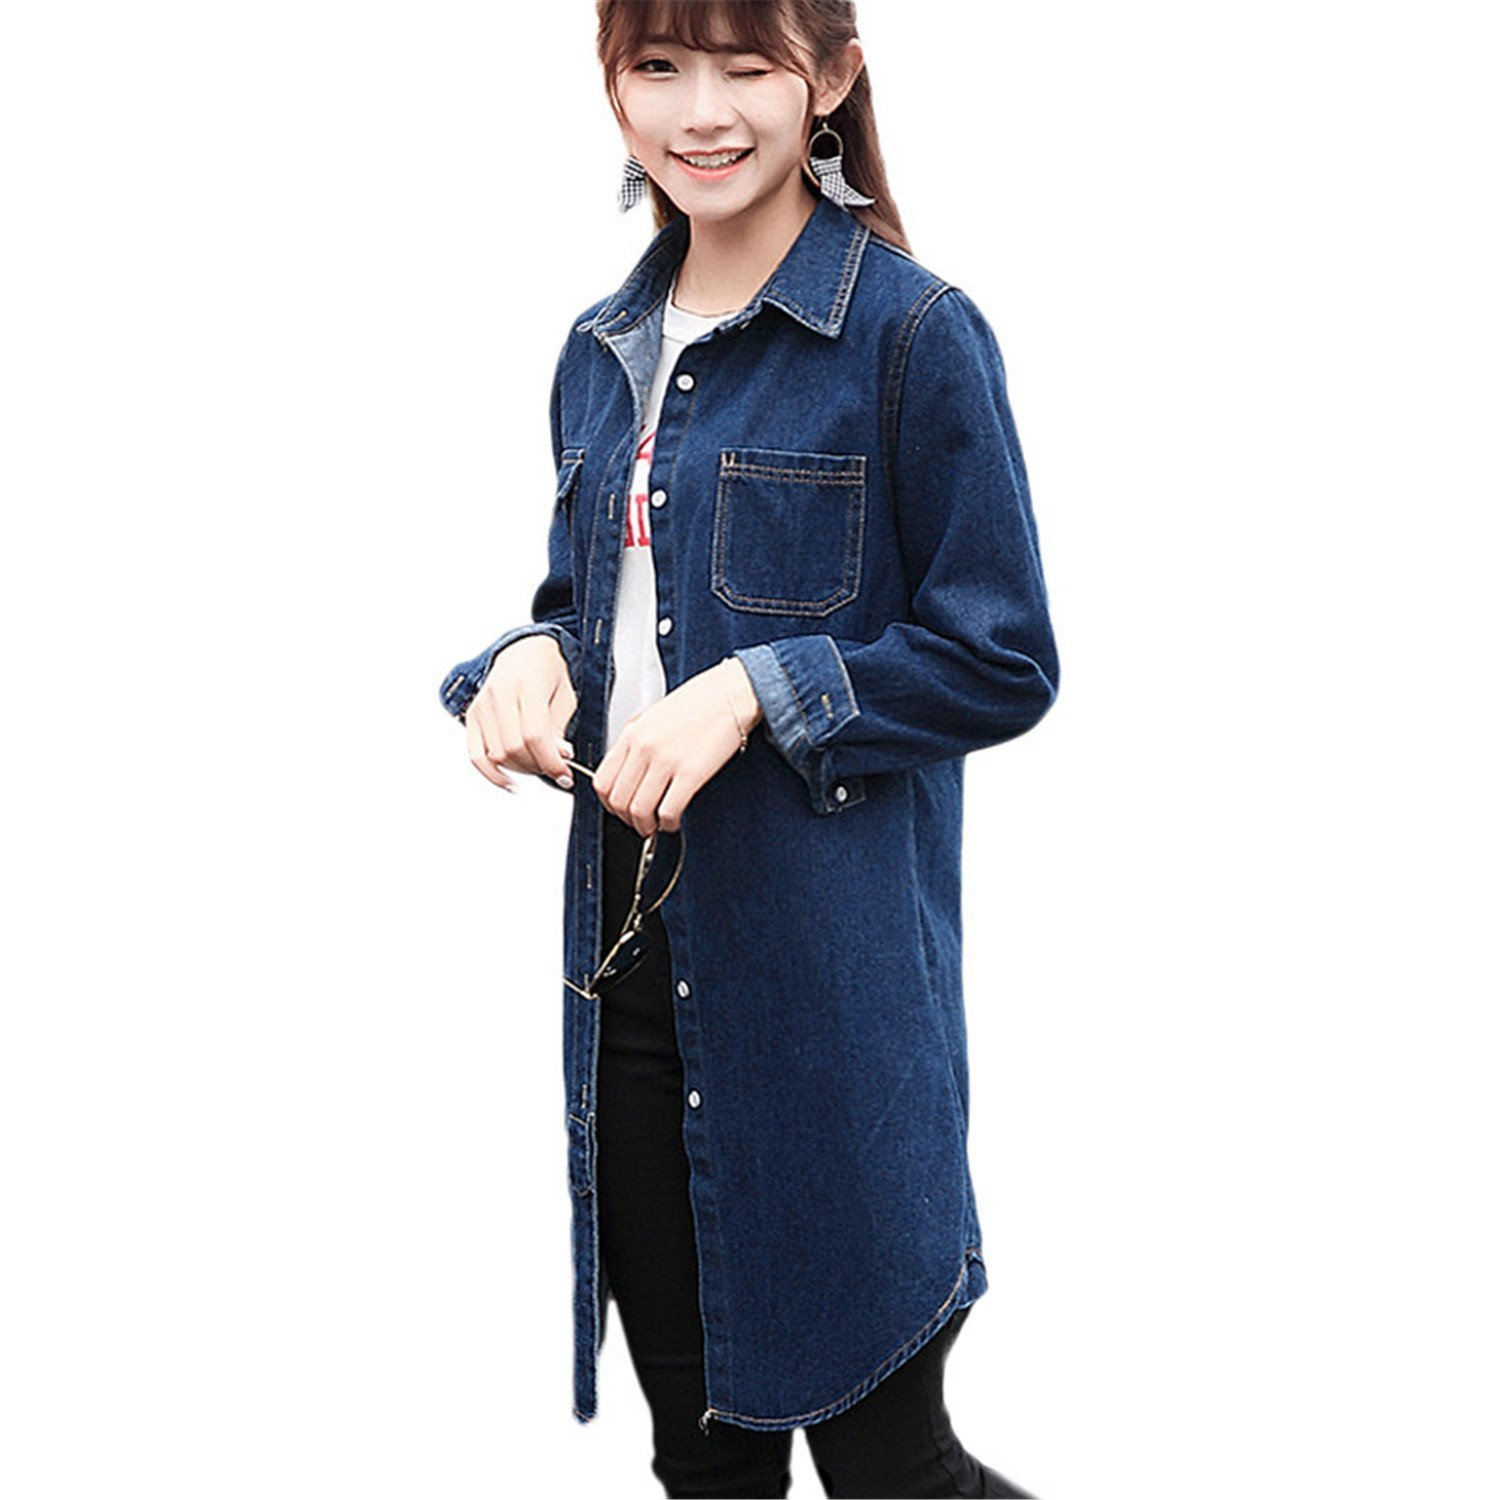 Toping Fine Spring Autumn Coat Women Vintage Slim single-breasted long-sleeve cool denim Trench Coat WICCON BlueXX-Large